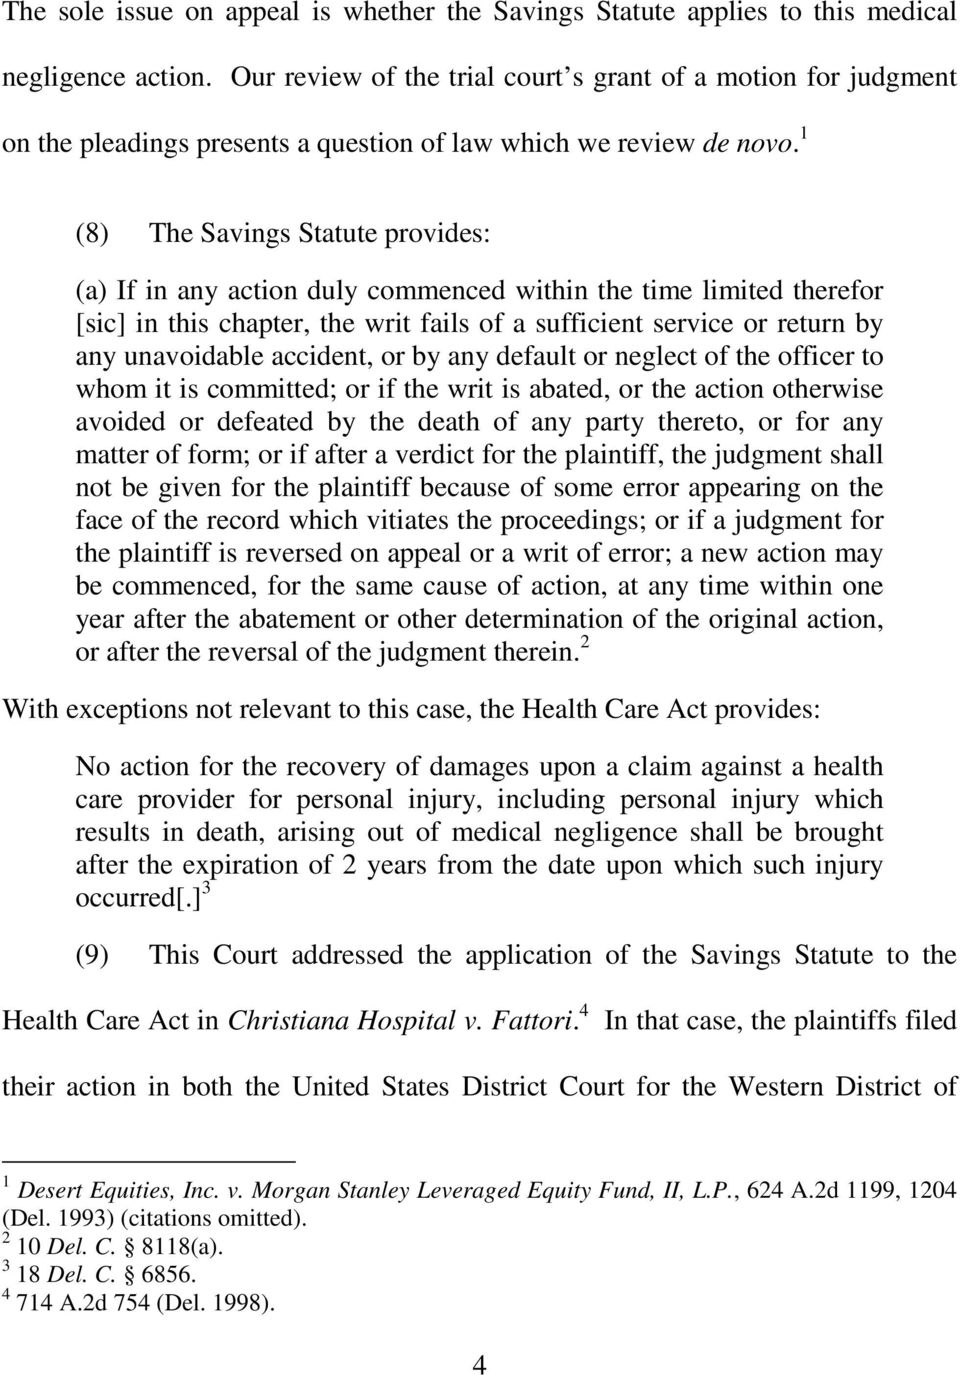 1 (8) The Savings Statute provides: (a) If in any action duly commenced within the time limited therefor [sic] in this chapter, the writ fails of a sufficient service or return by any unavoidable